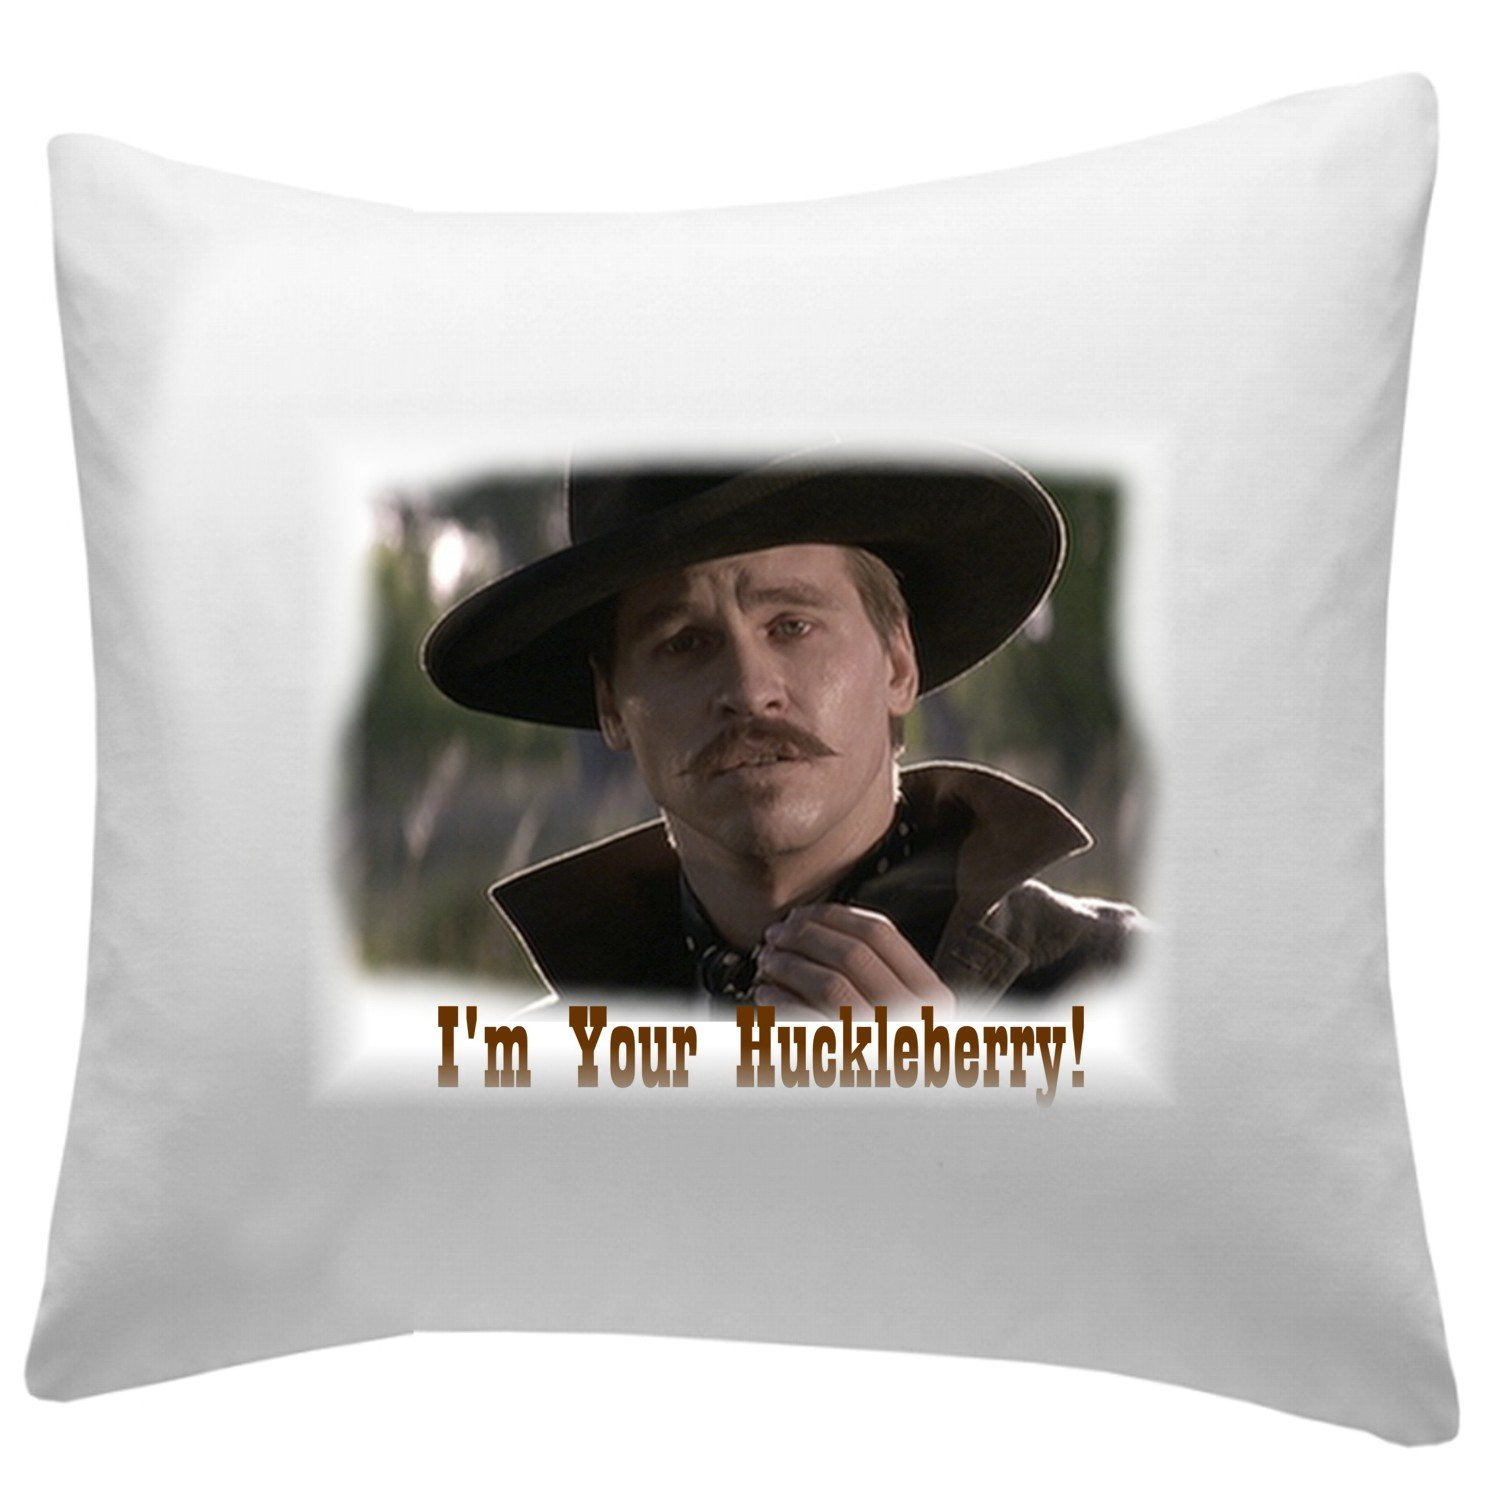 Movie Tombstone Throw Pillow 14 X 14 Doc Holliday I'm Your Huckleberry decorative couch pillow case